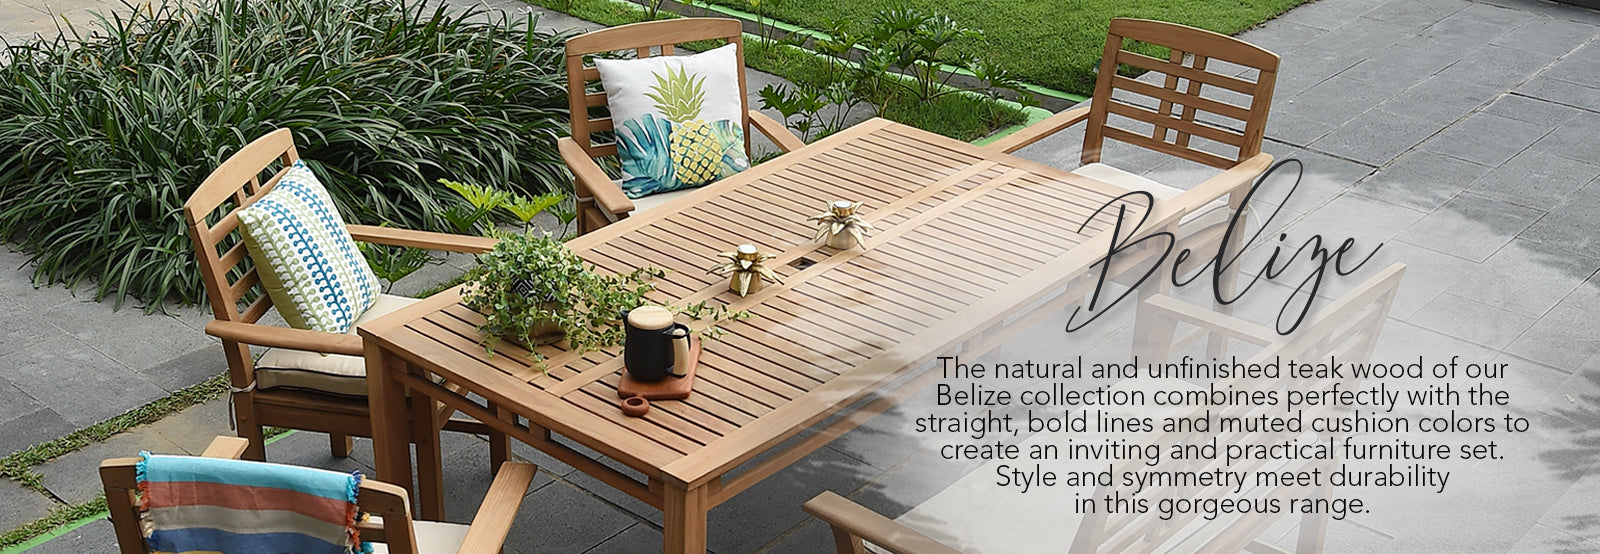 Explore the Belize collection from Cambridge Causal today. Discover the wonderful aesthetic of this teak outdoor furniture.